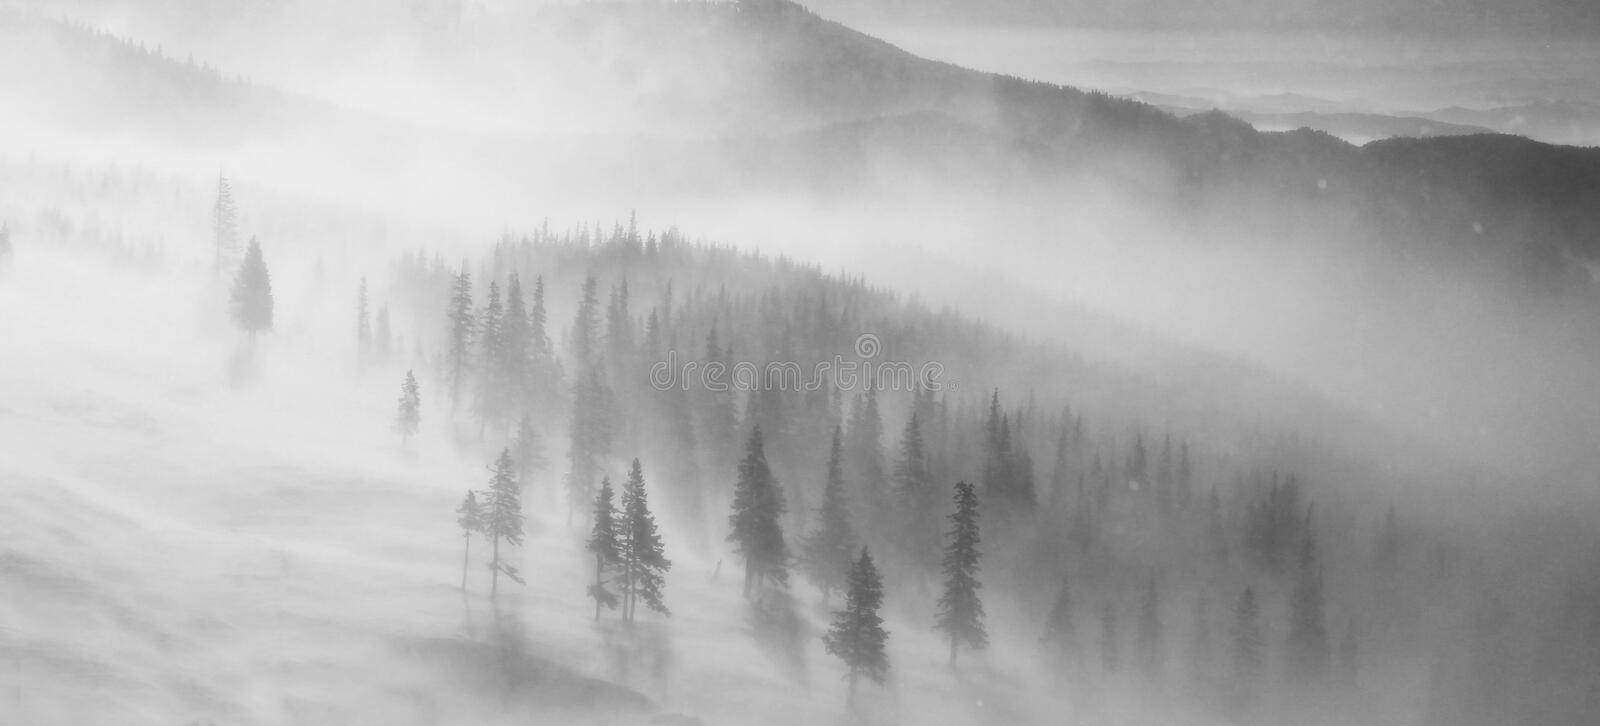 Download Heavy Snow Blizzard On Mountain Slope Stock Image - Image of gale, image: 91472529